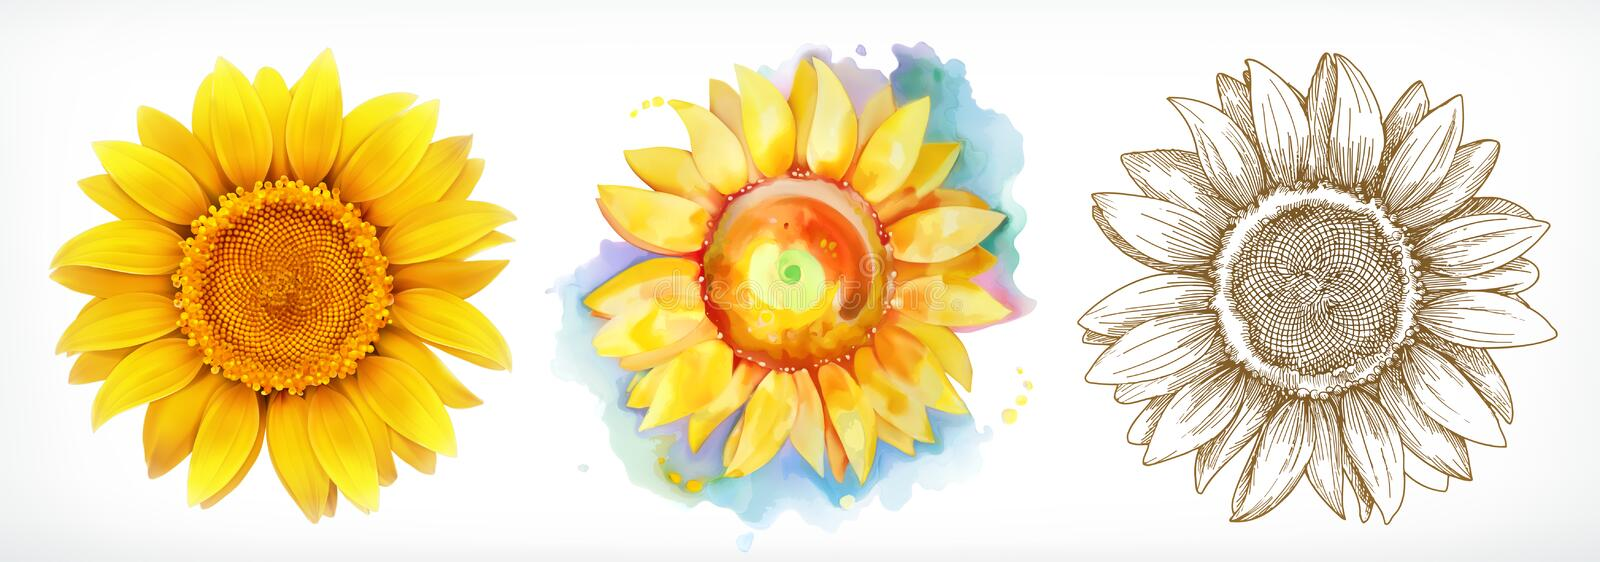 Sunflower, different styles, vector drawing, icon set vector illustration